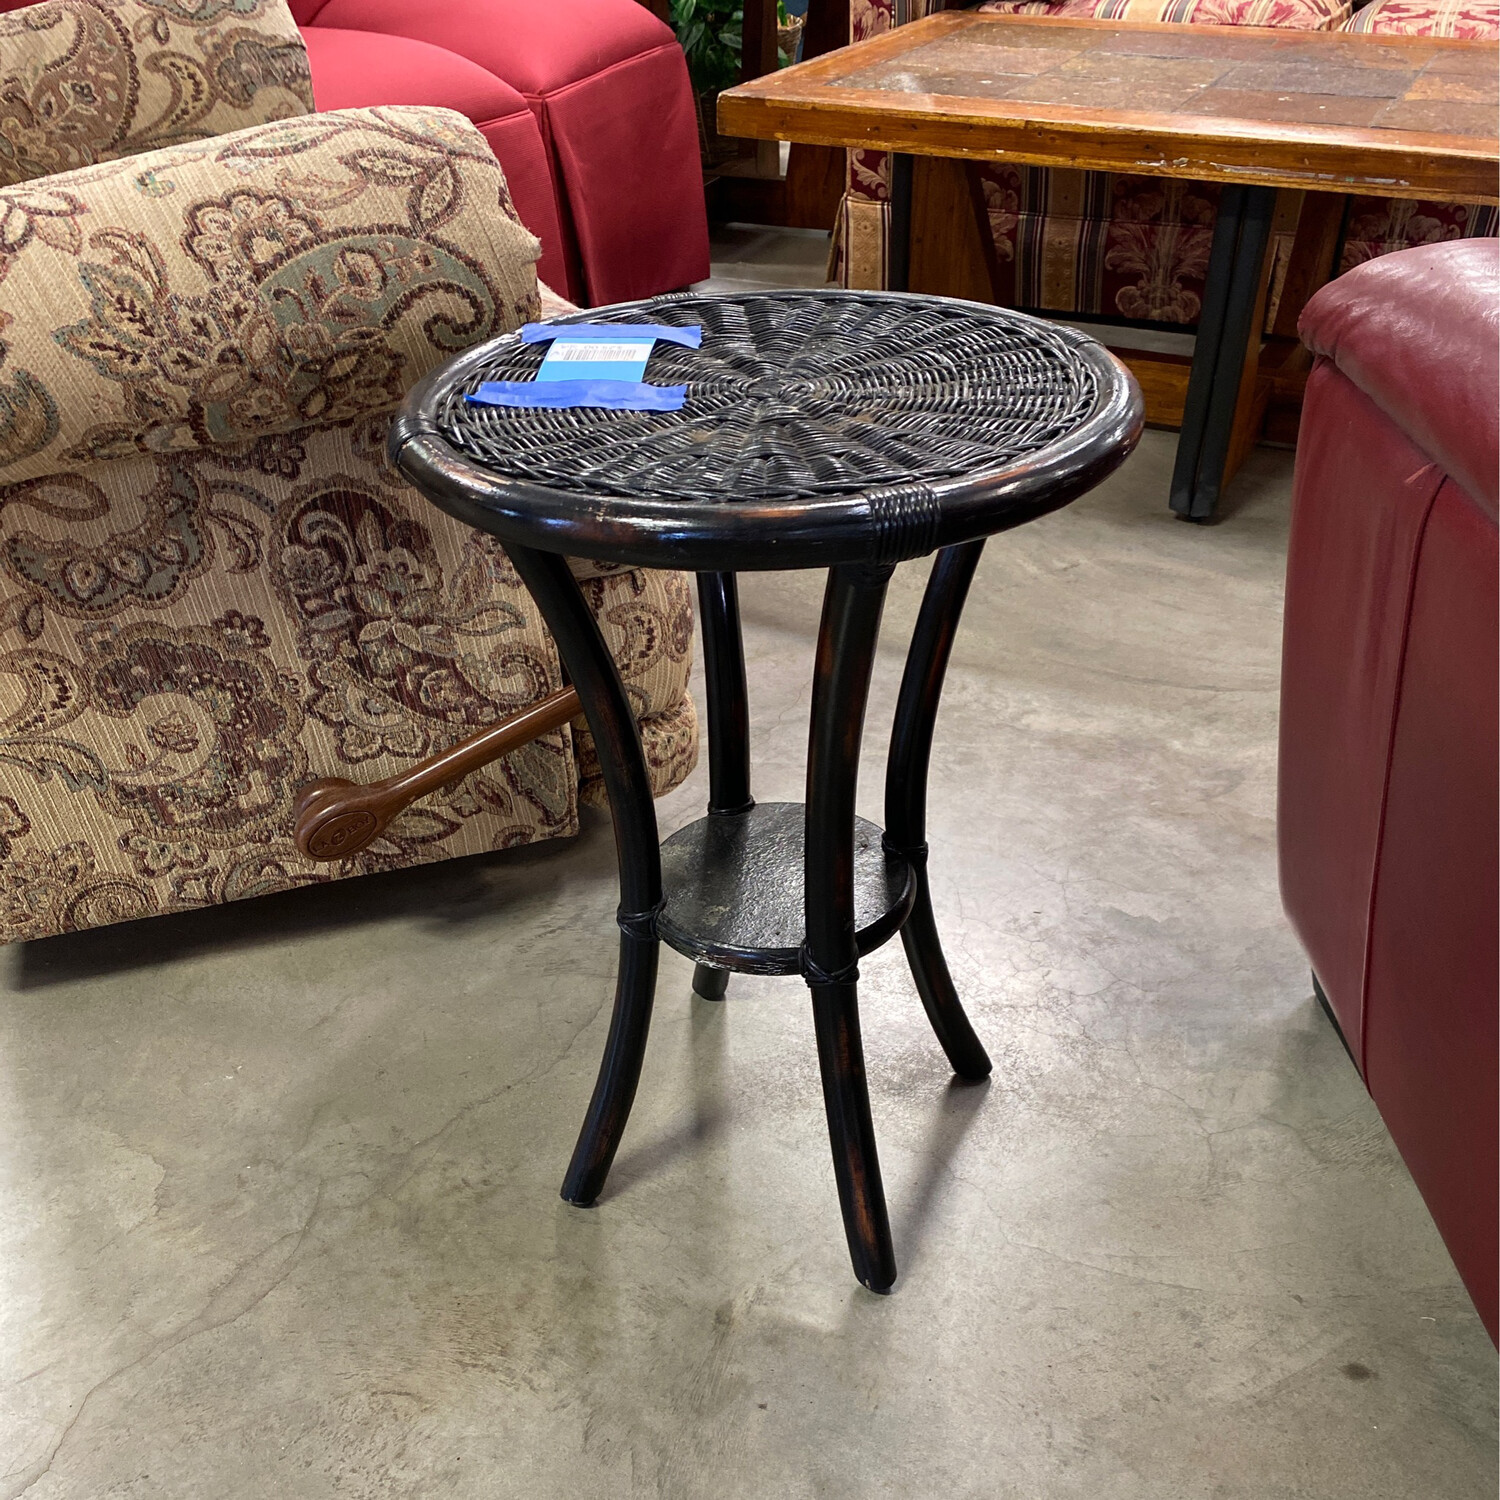 SMALL ROUND WICKER SIDE TABLE